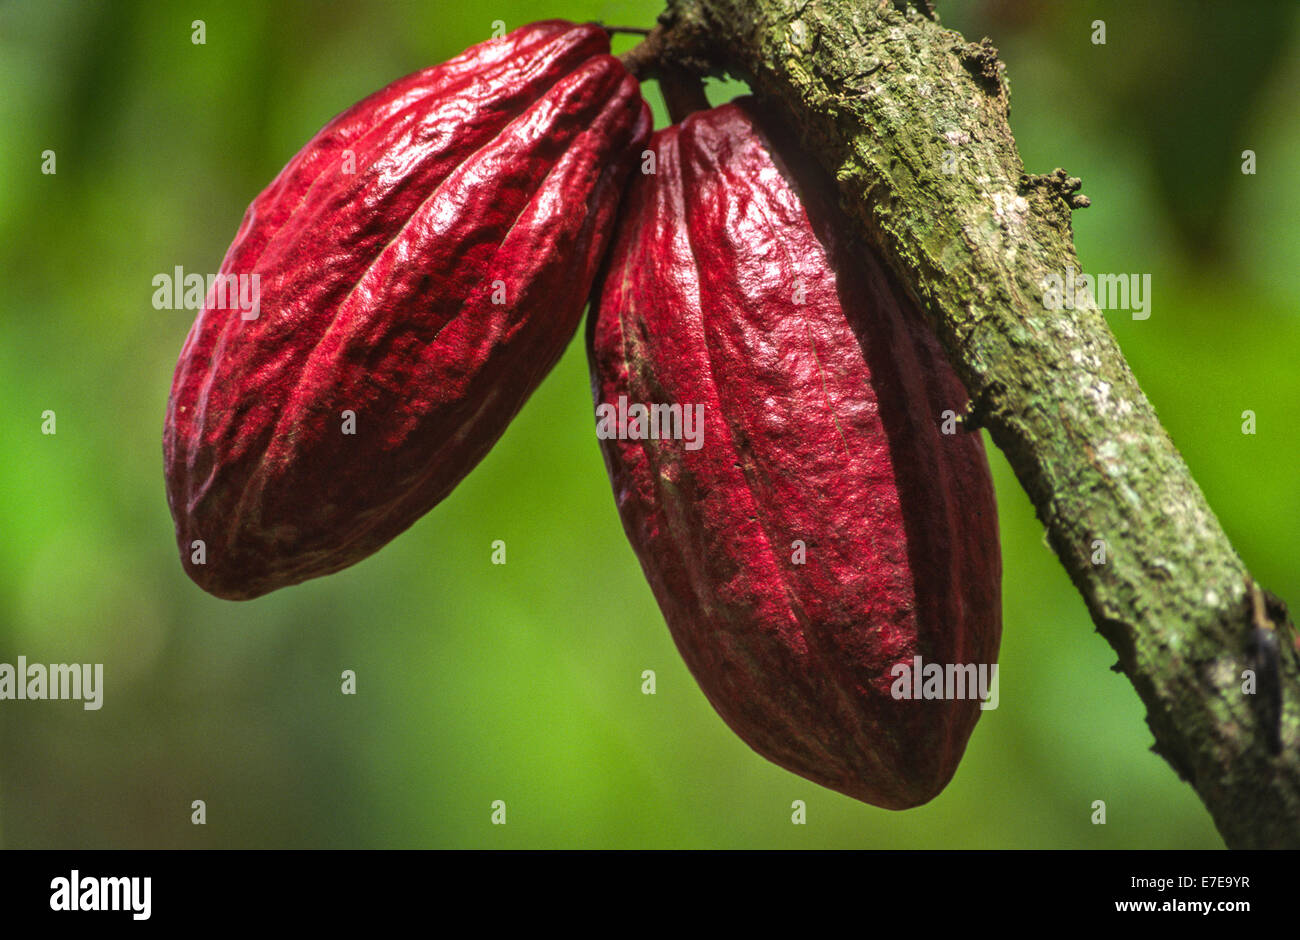 COCOA BEAN [ Theobroma cacao ] PODS ON A TREE IN THE WEST INDIES - Stock Image